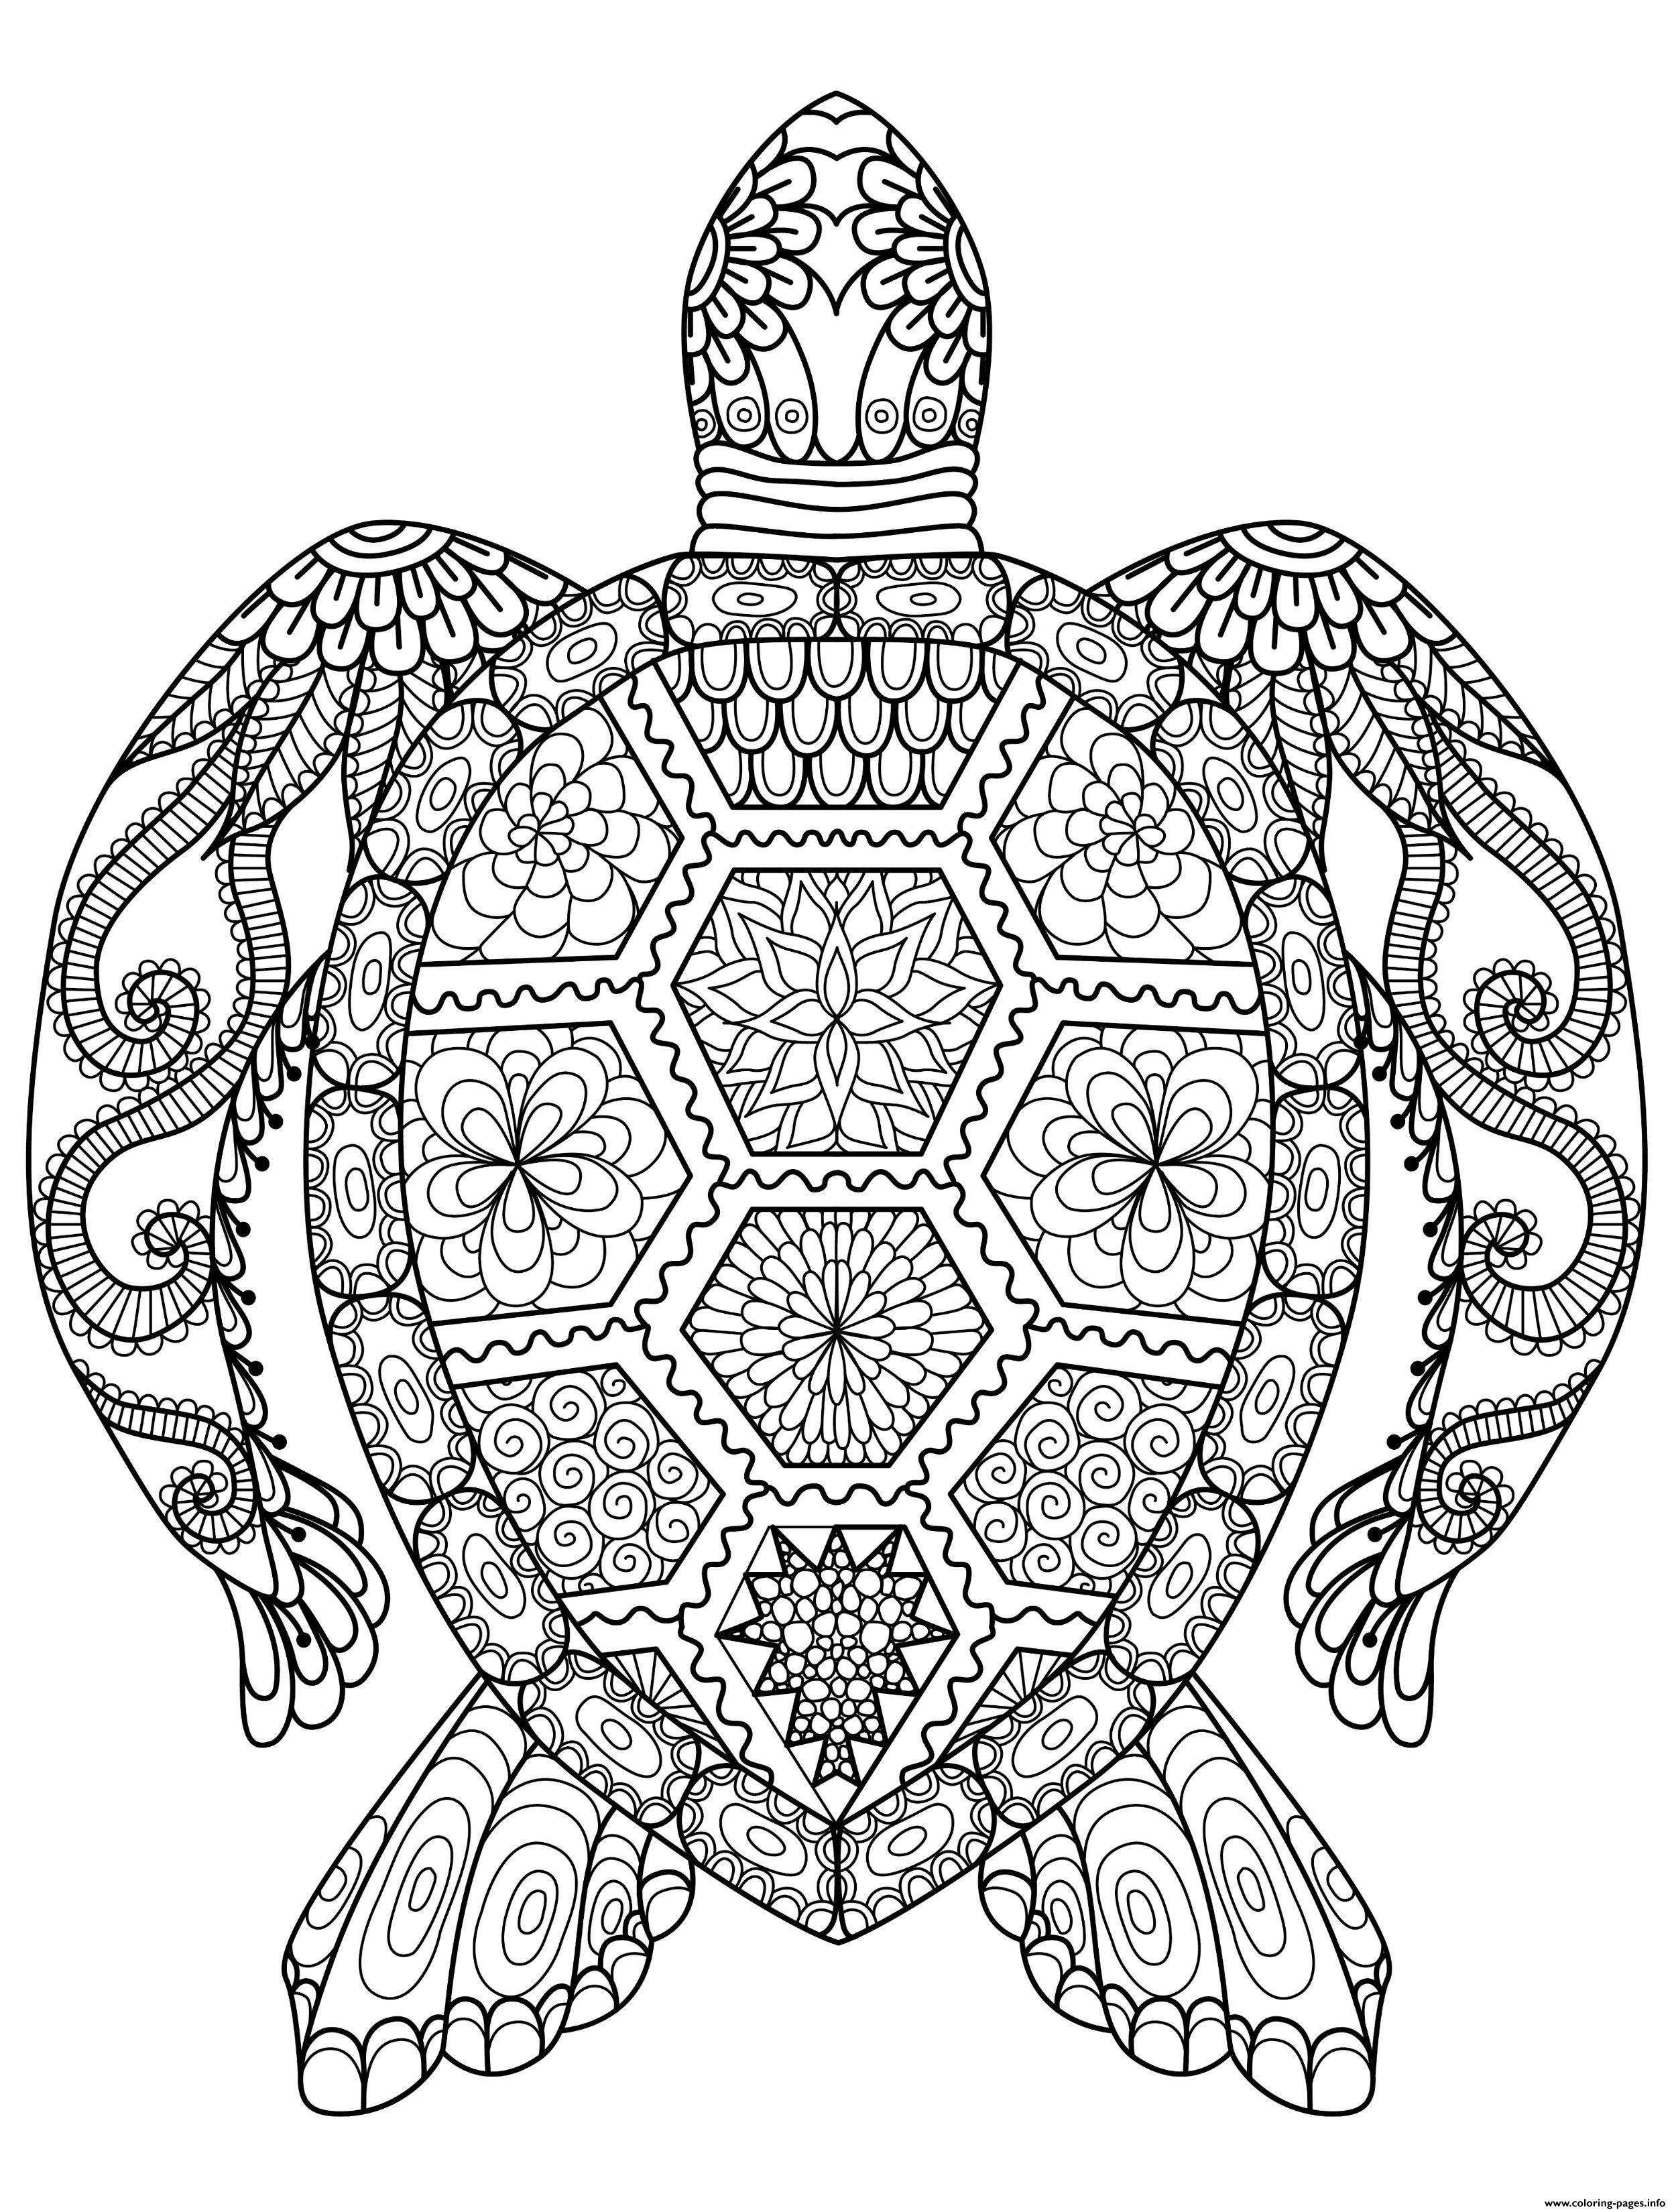 zentangle coloring pages free printable zentangle coloring pages printable at getcoloringscom printable pages zentangle free coloring